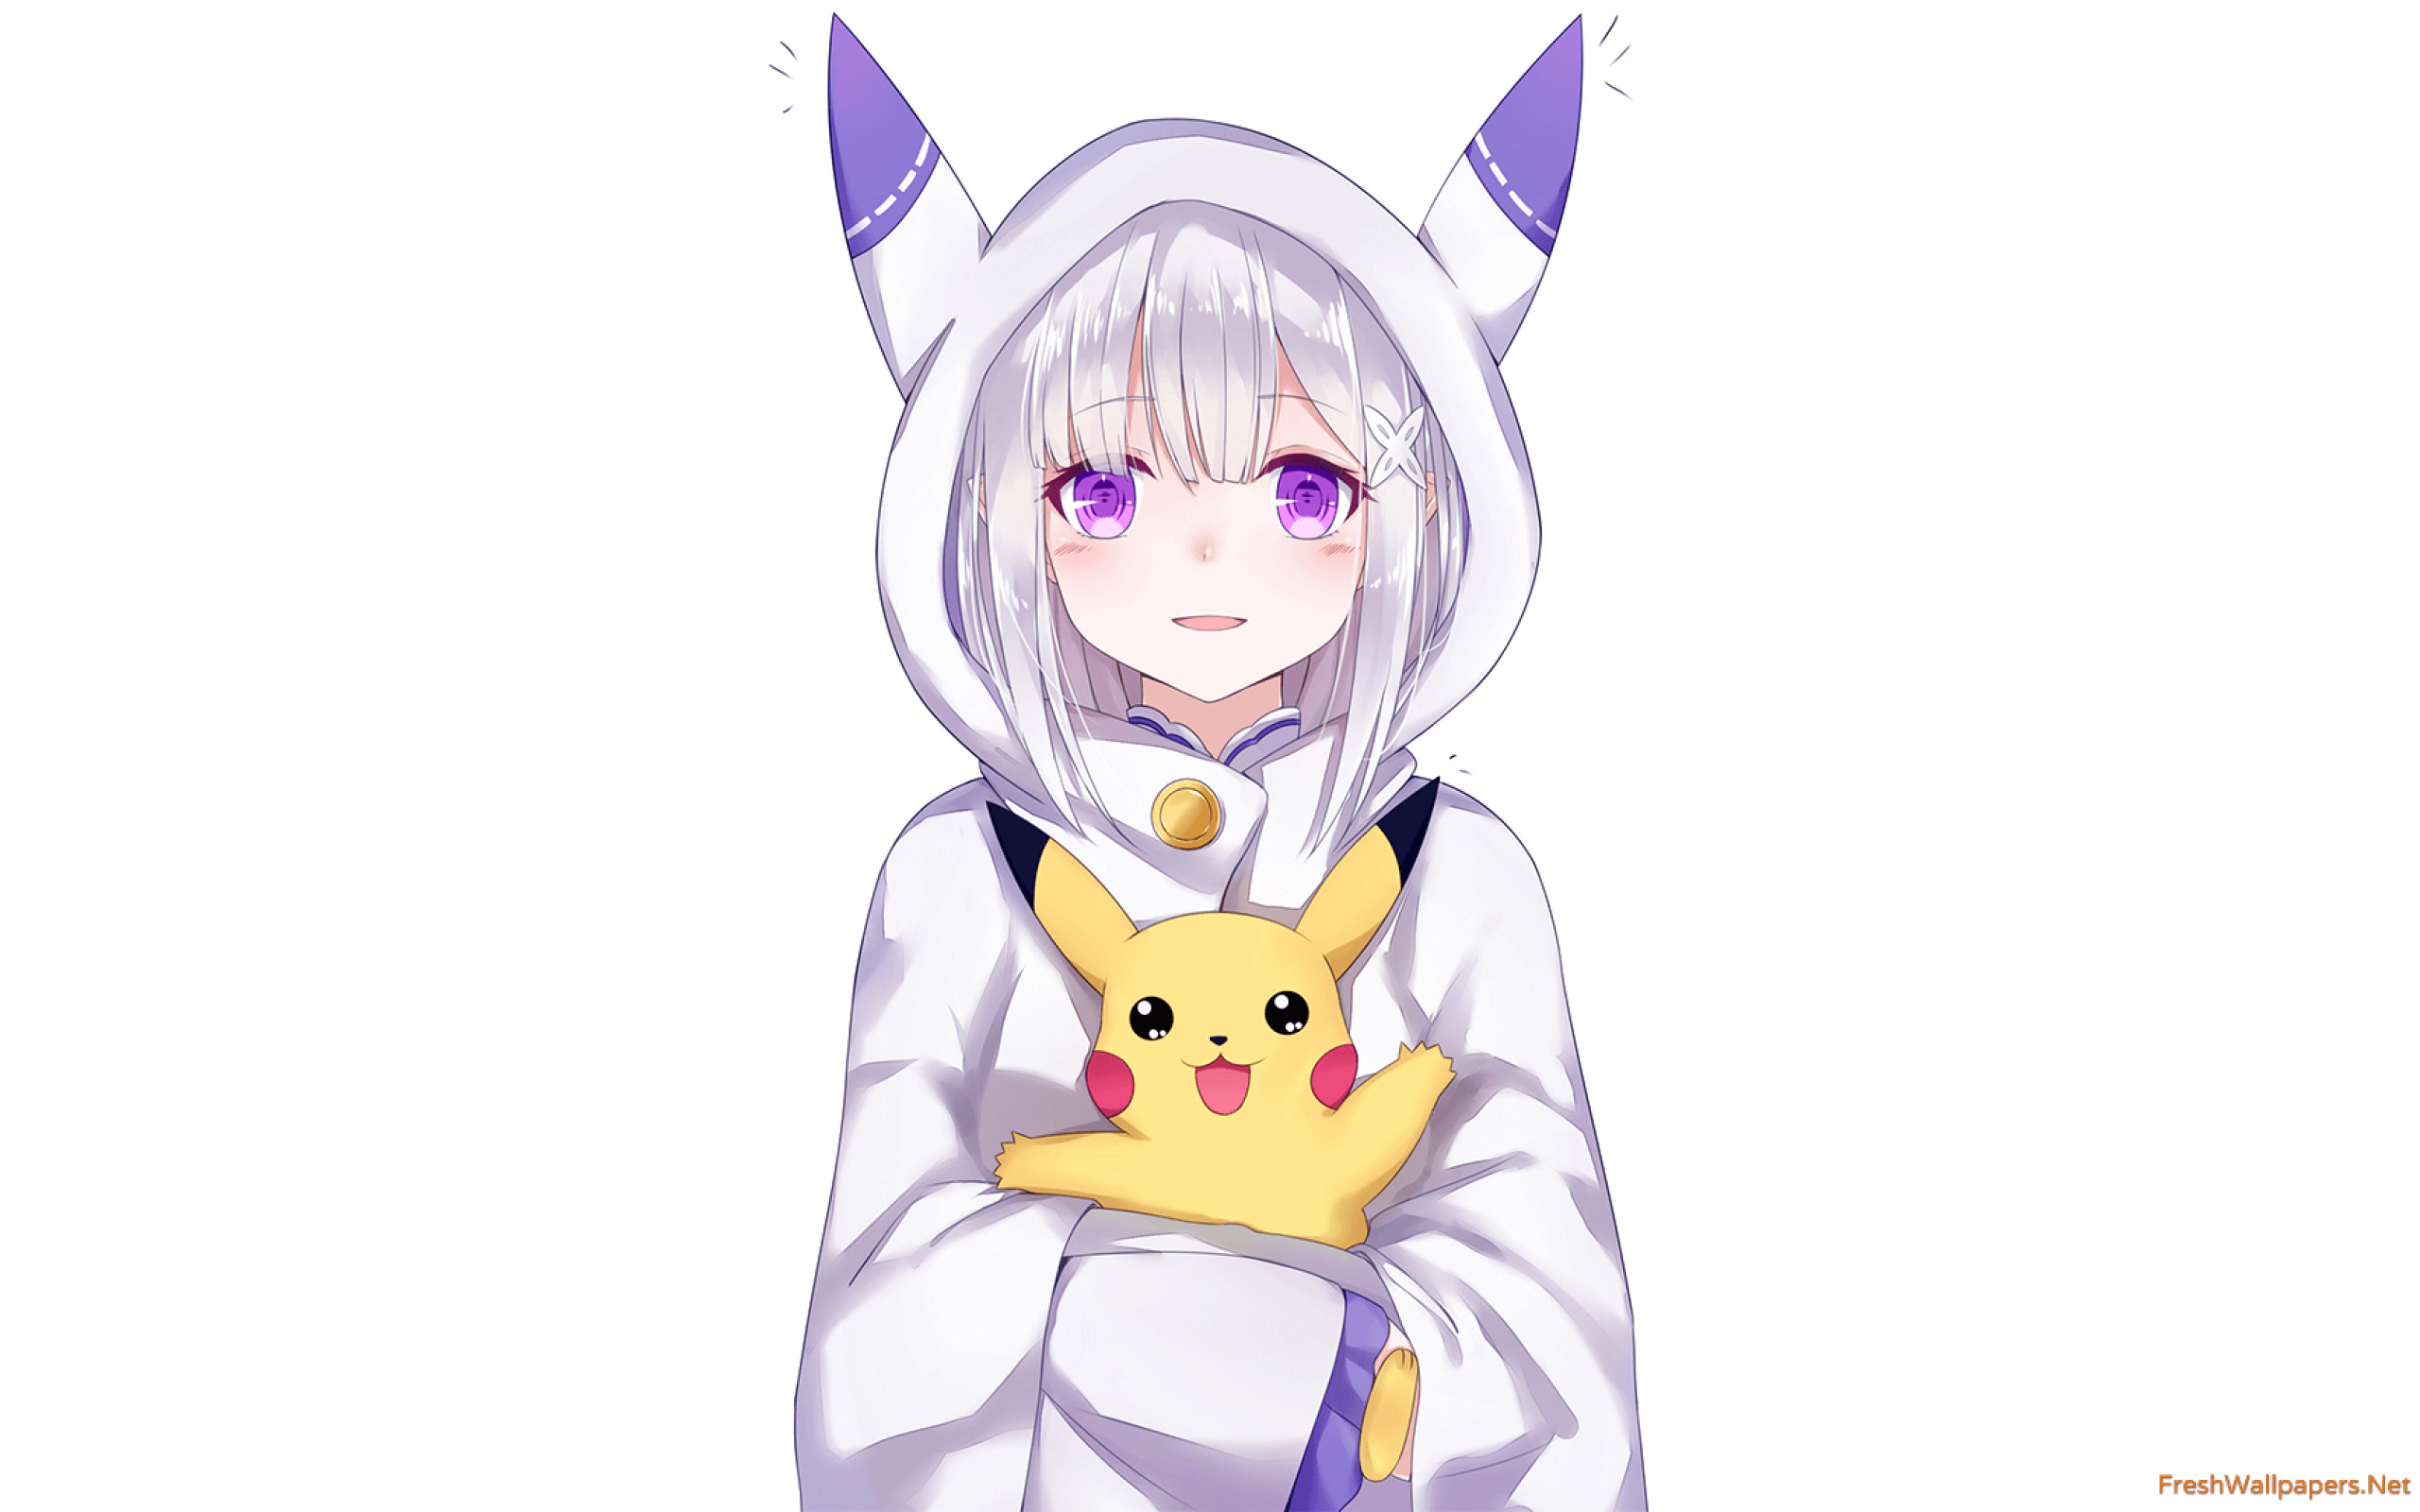 2560x1600 Emilia and Pikachu wallpapers   Freshwallpapers